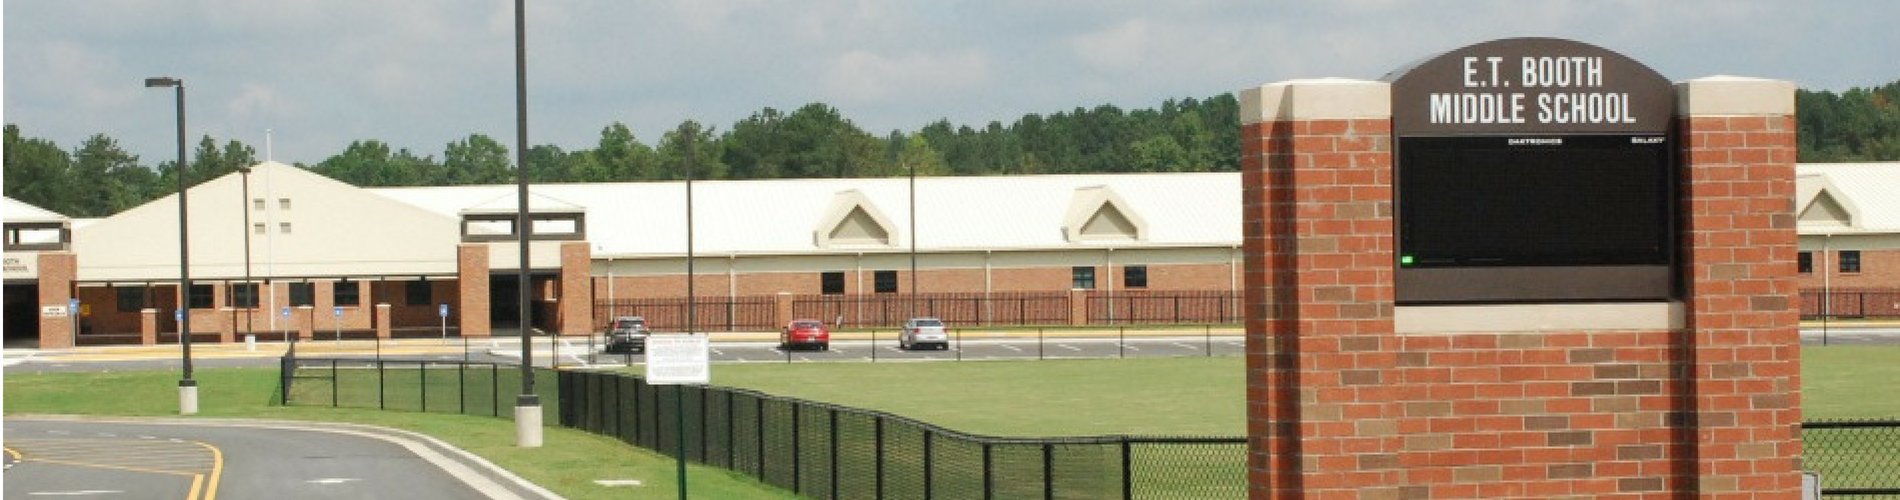 Photo of E.T. Booth Middle School